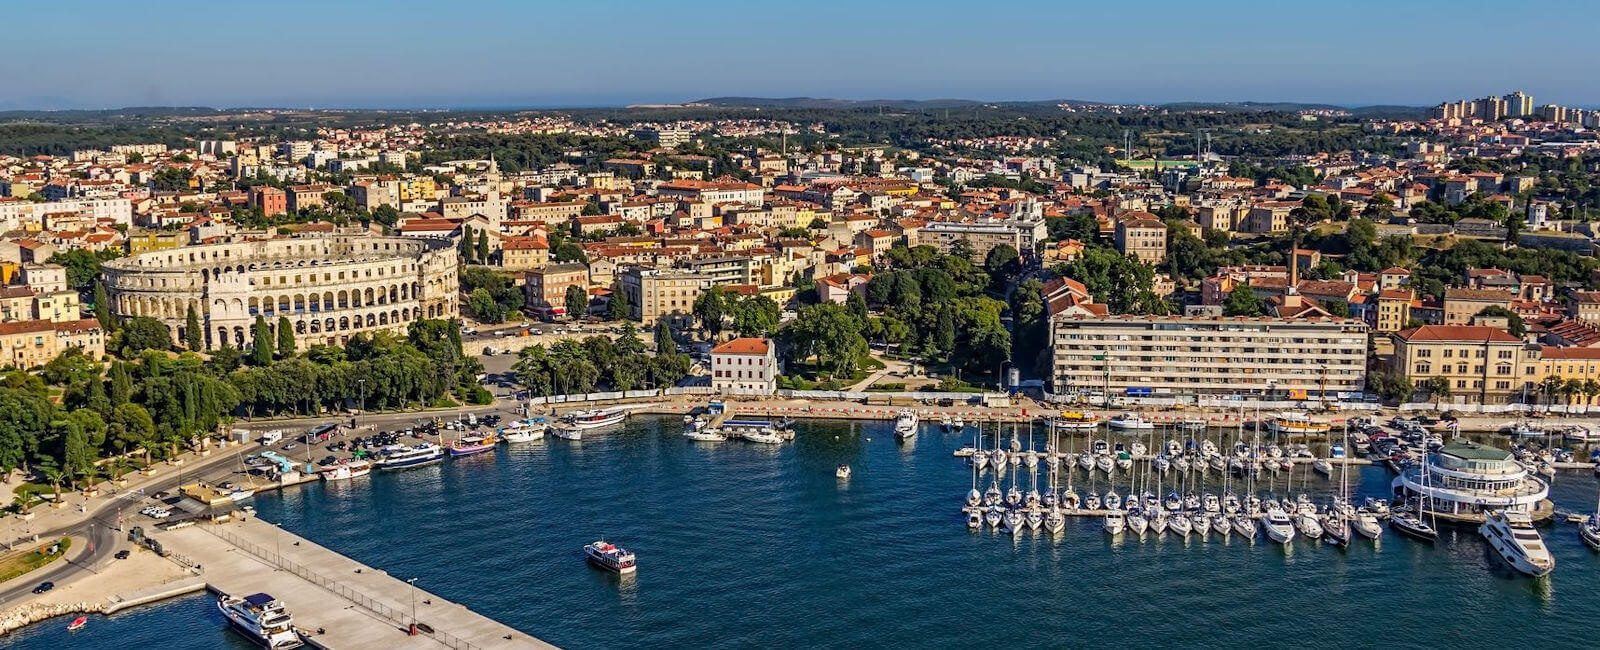 luxury pula holidays, croatia